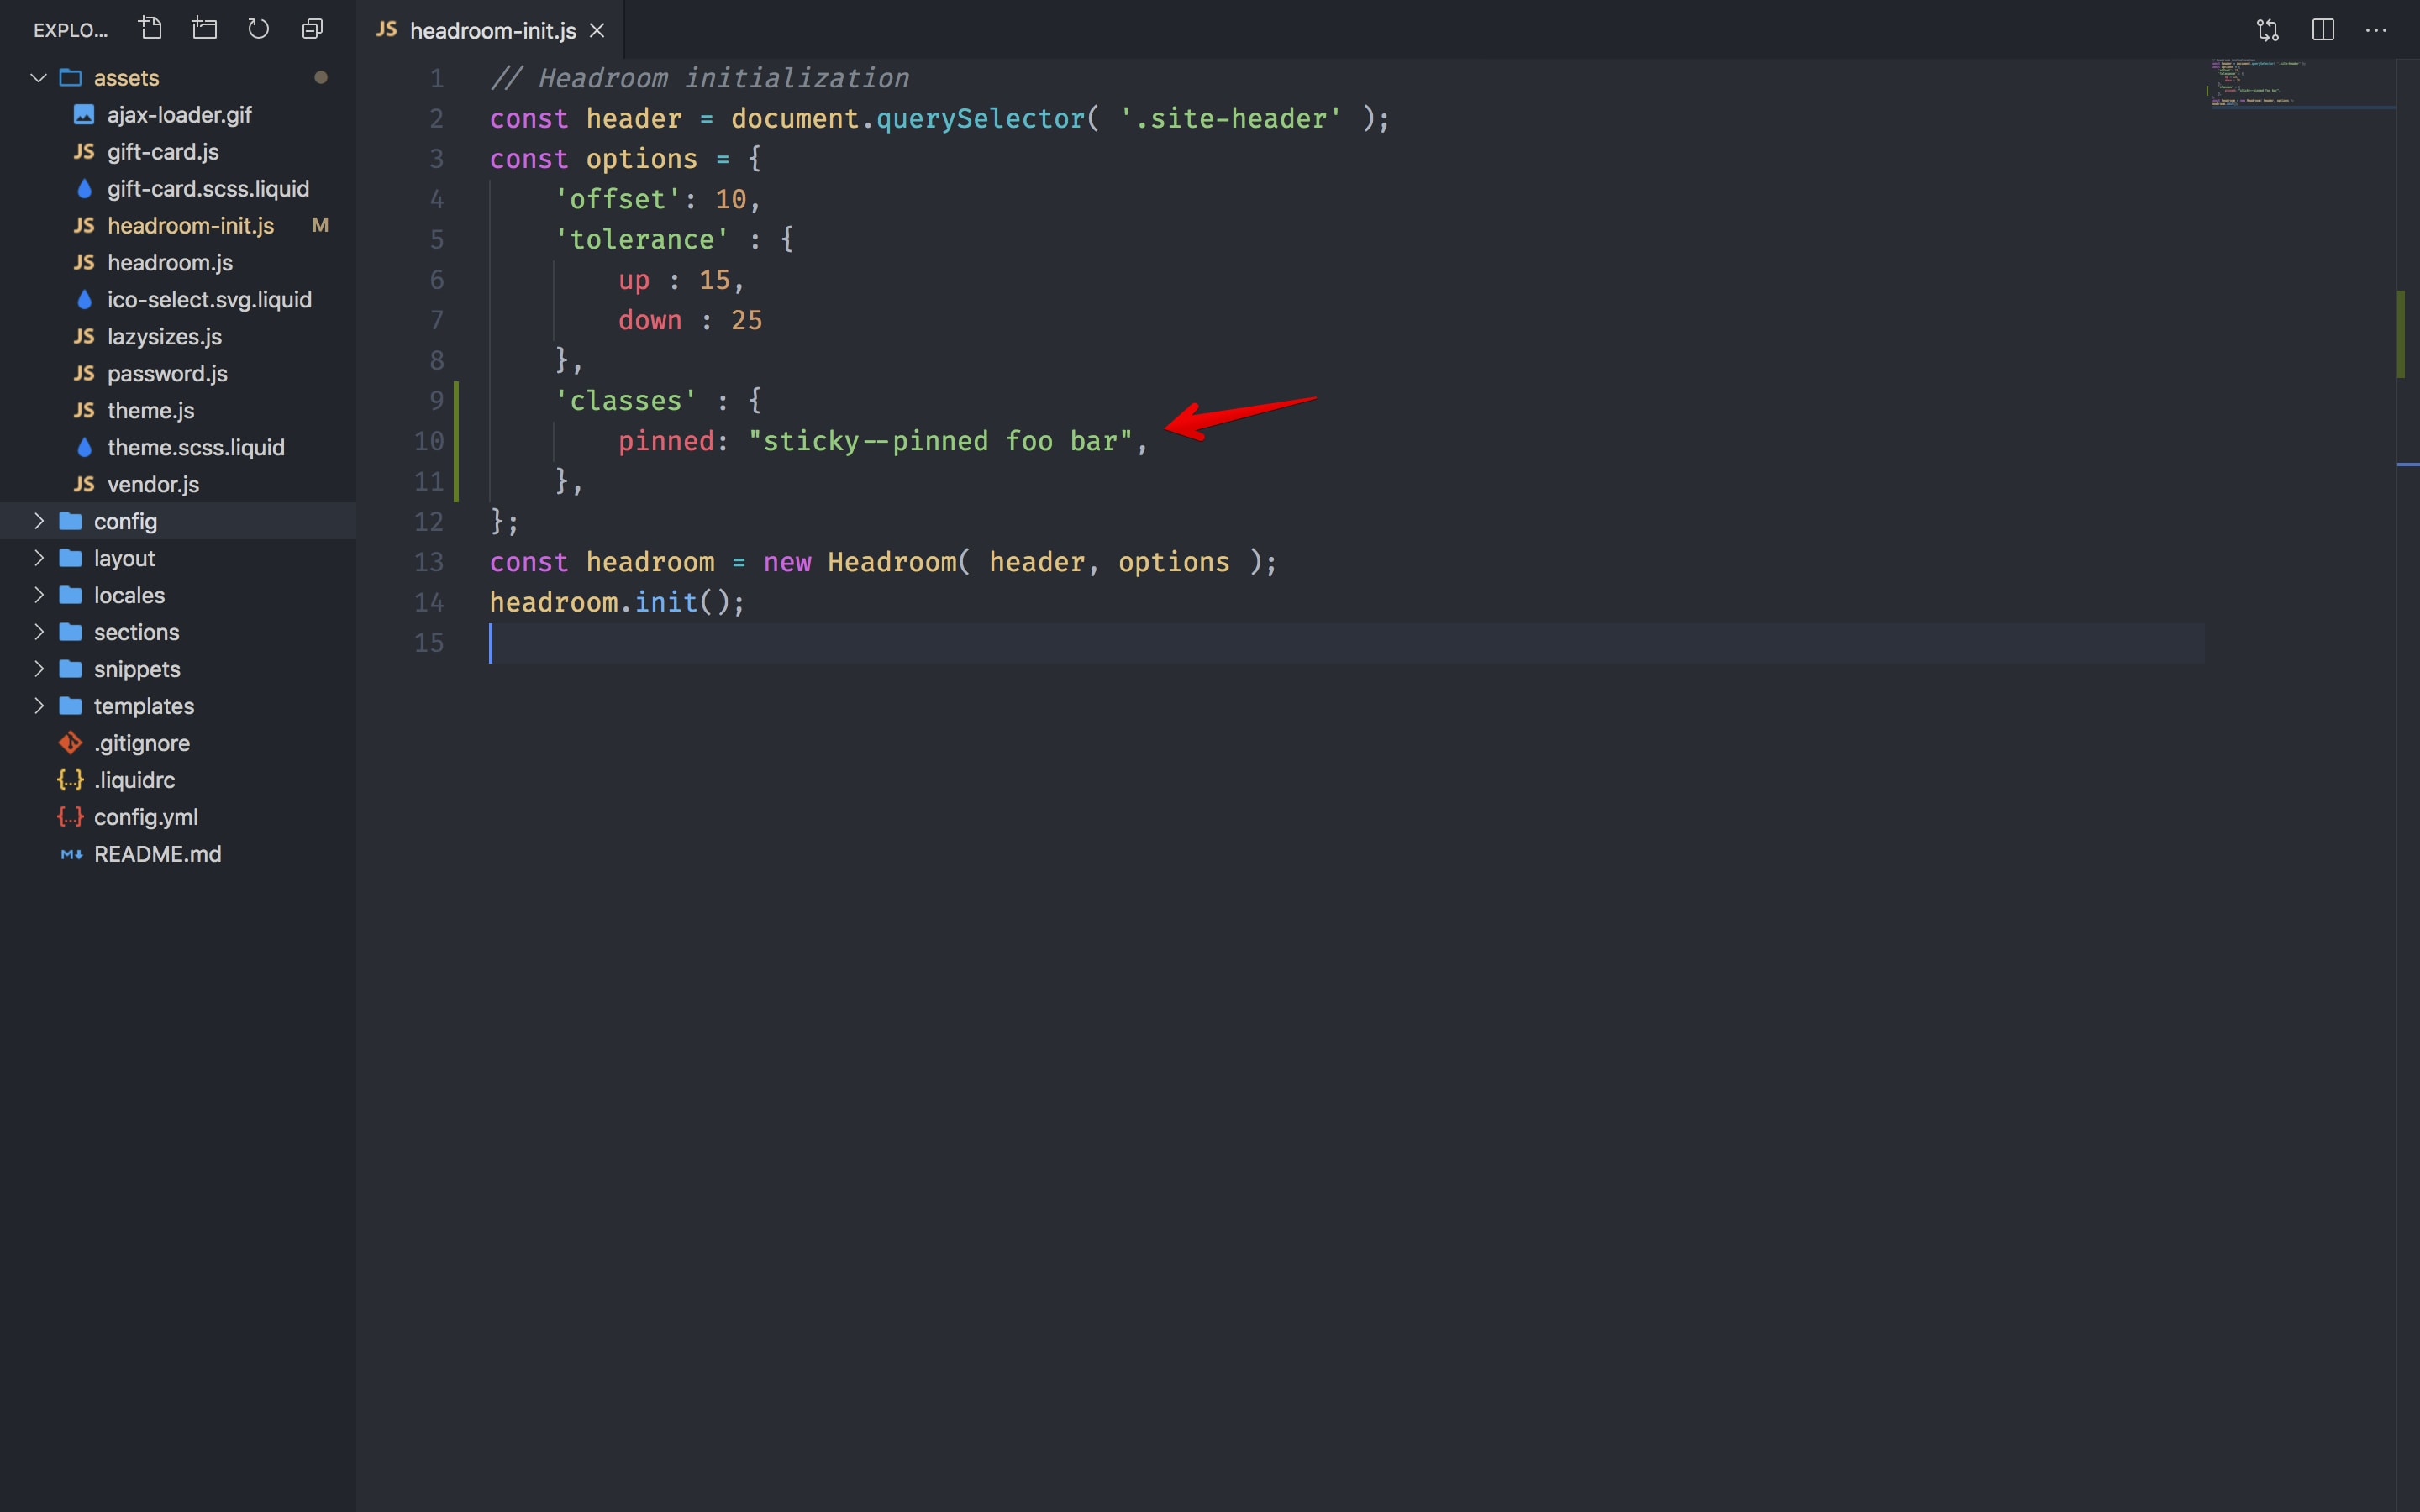 Adding multiple CSS classes to the targeted element.